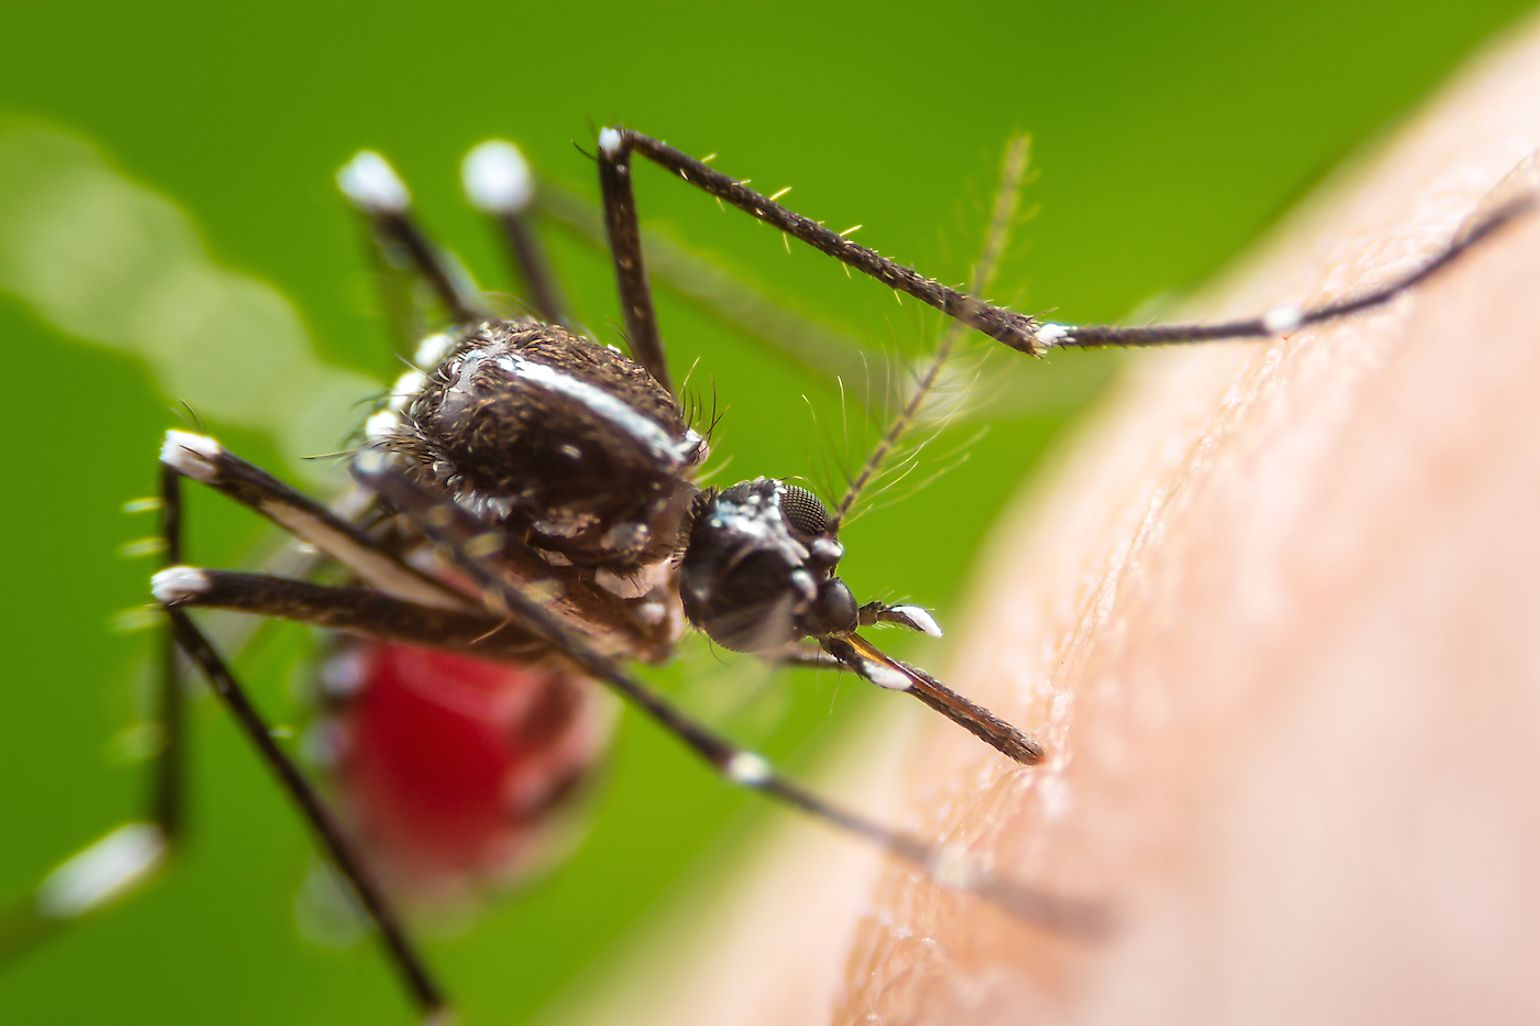 A mosquito bite can transmit deadly diseases. Image credit: Khlungcenter/Shutterstock.com